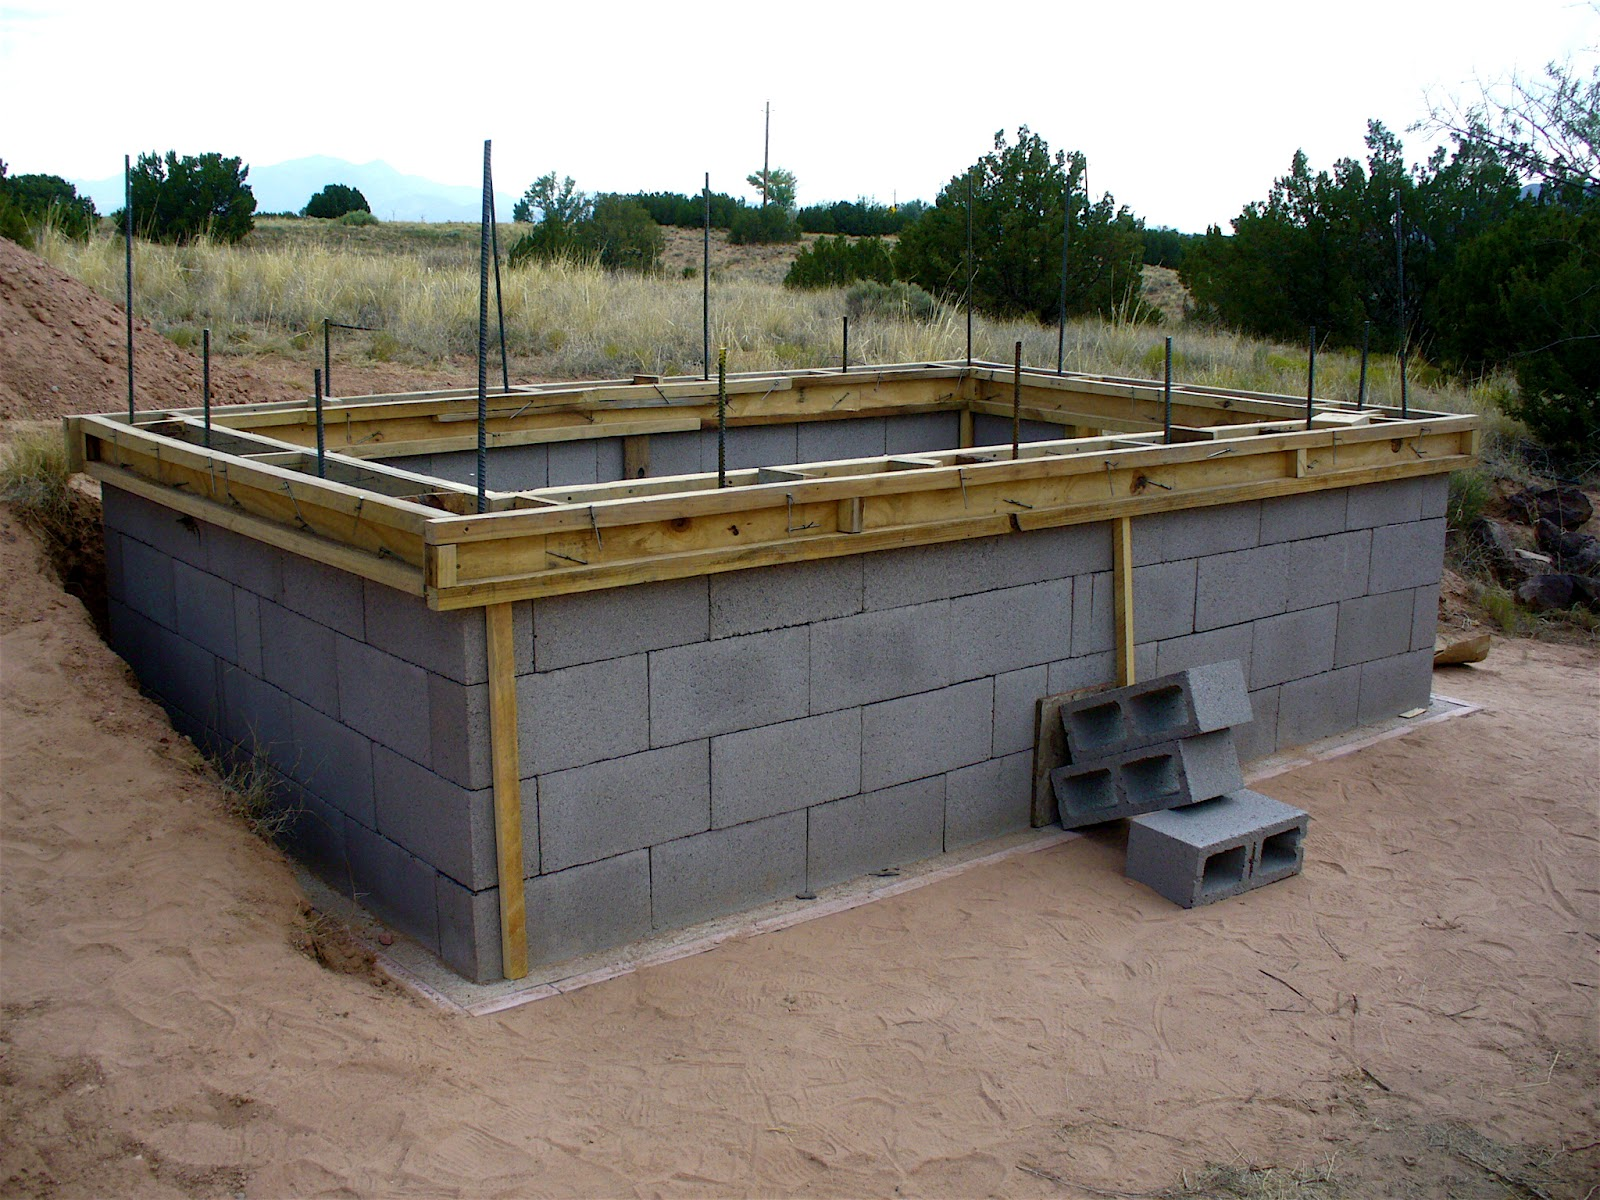 Alt. Build Blog: Building A Well House #2: Dry Stack ...